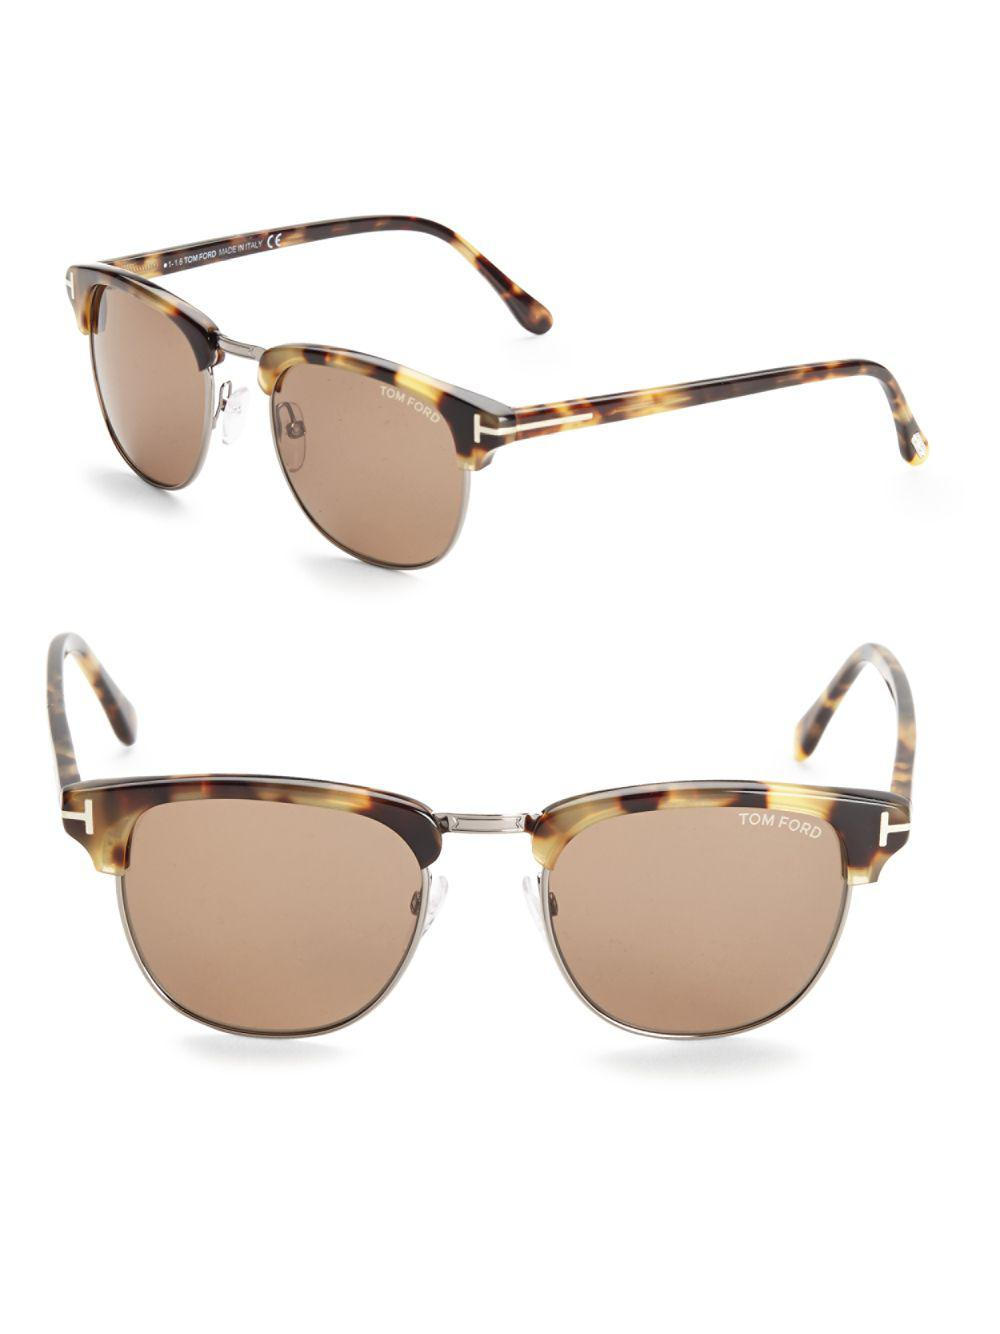 51c7fefc226 Lyst - Tom Ford 51mm Clubmaster Sunglasses in Brown